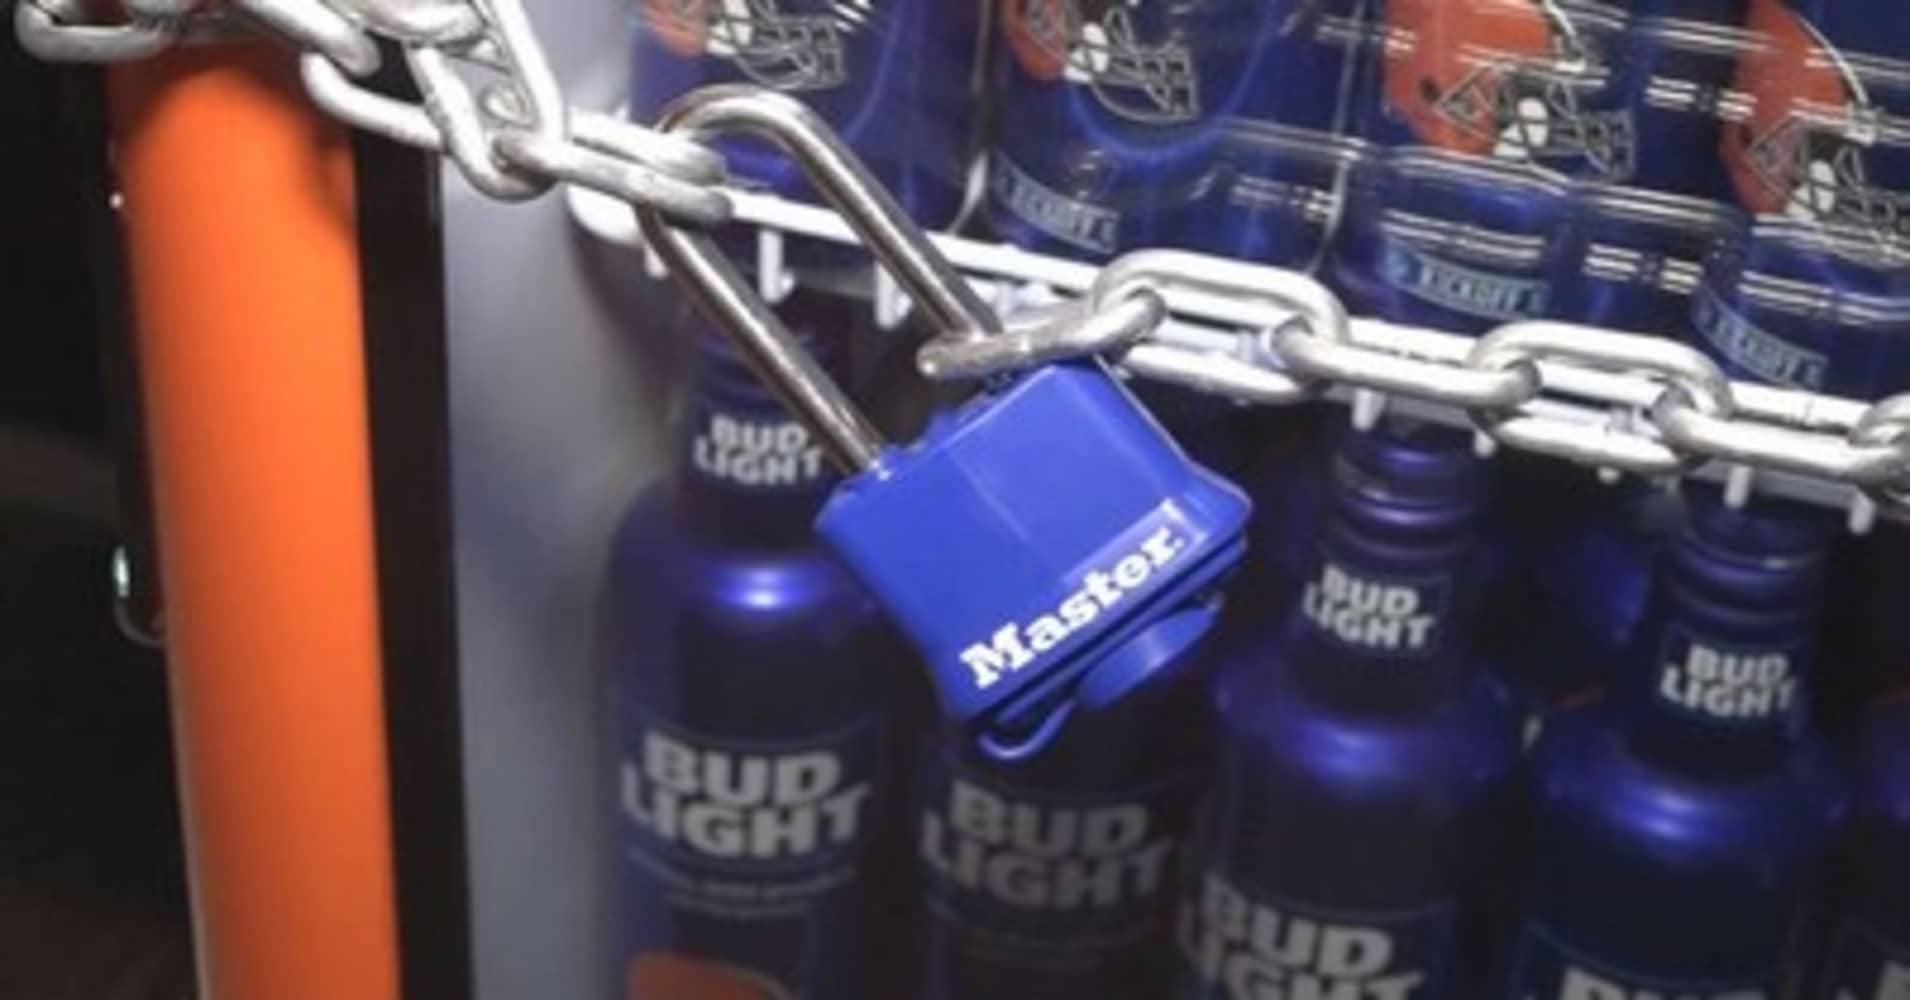 Bud light places victory fridges in cleveland bars malvernweather Gallery